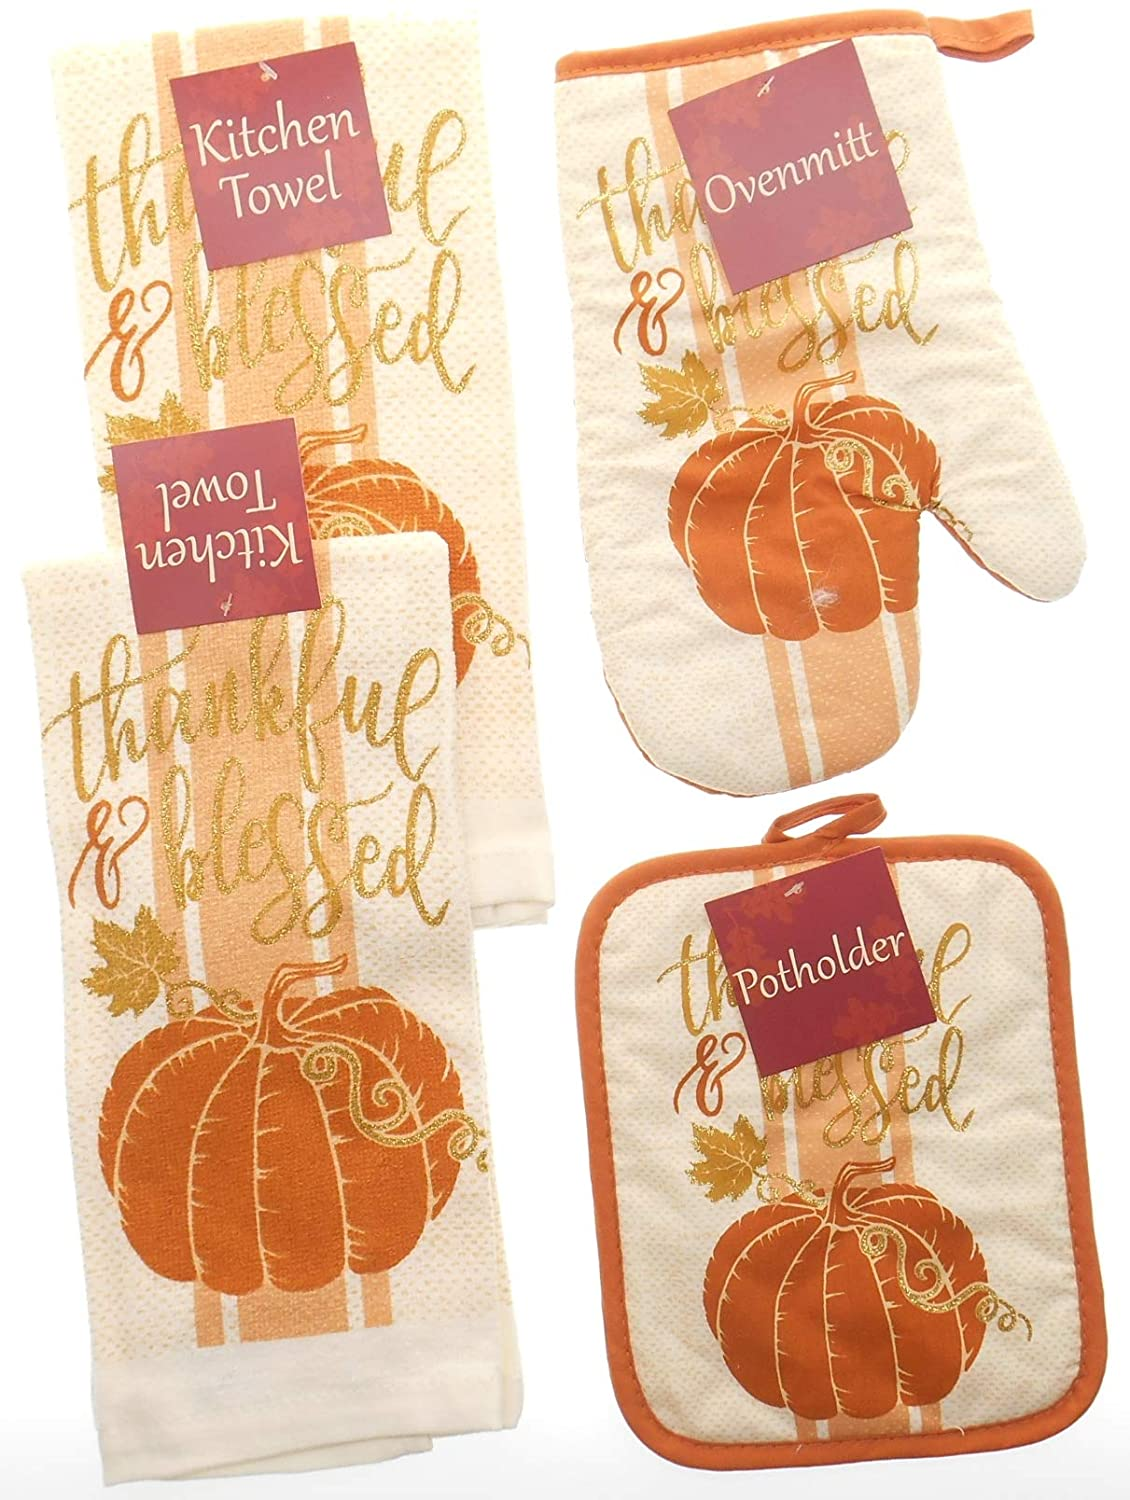 Thankful and Blessed Soft Orange Kitchen Towel Set Accented with Gold Glitter. Bundle of 4 Includes 2 Towels, 1 Oven Mitt and 1 Pot Holder. Fall Kitchen Towels Set. Mainstream